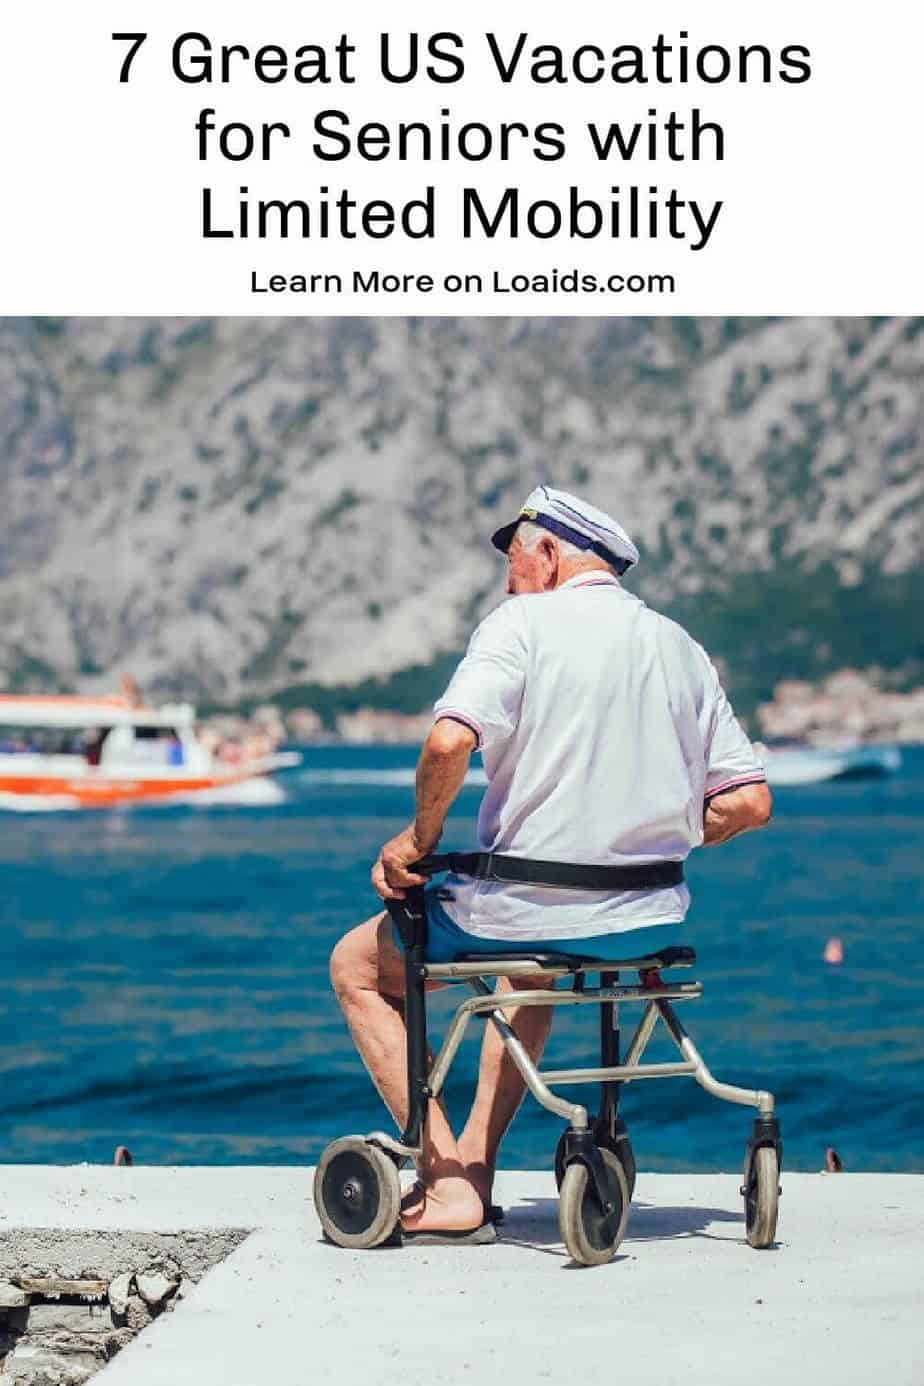 Are you looking for the best vacations for seniors with mobility issues for yourself or your grandparents? We reviewed 7 worth-it US destinations. Read on!